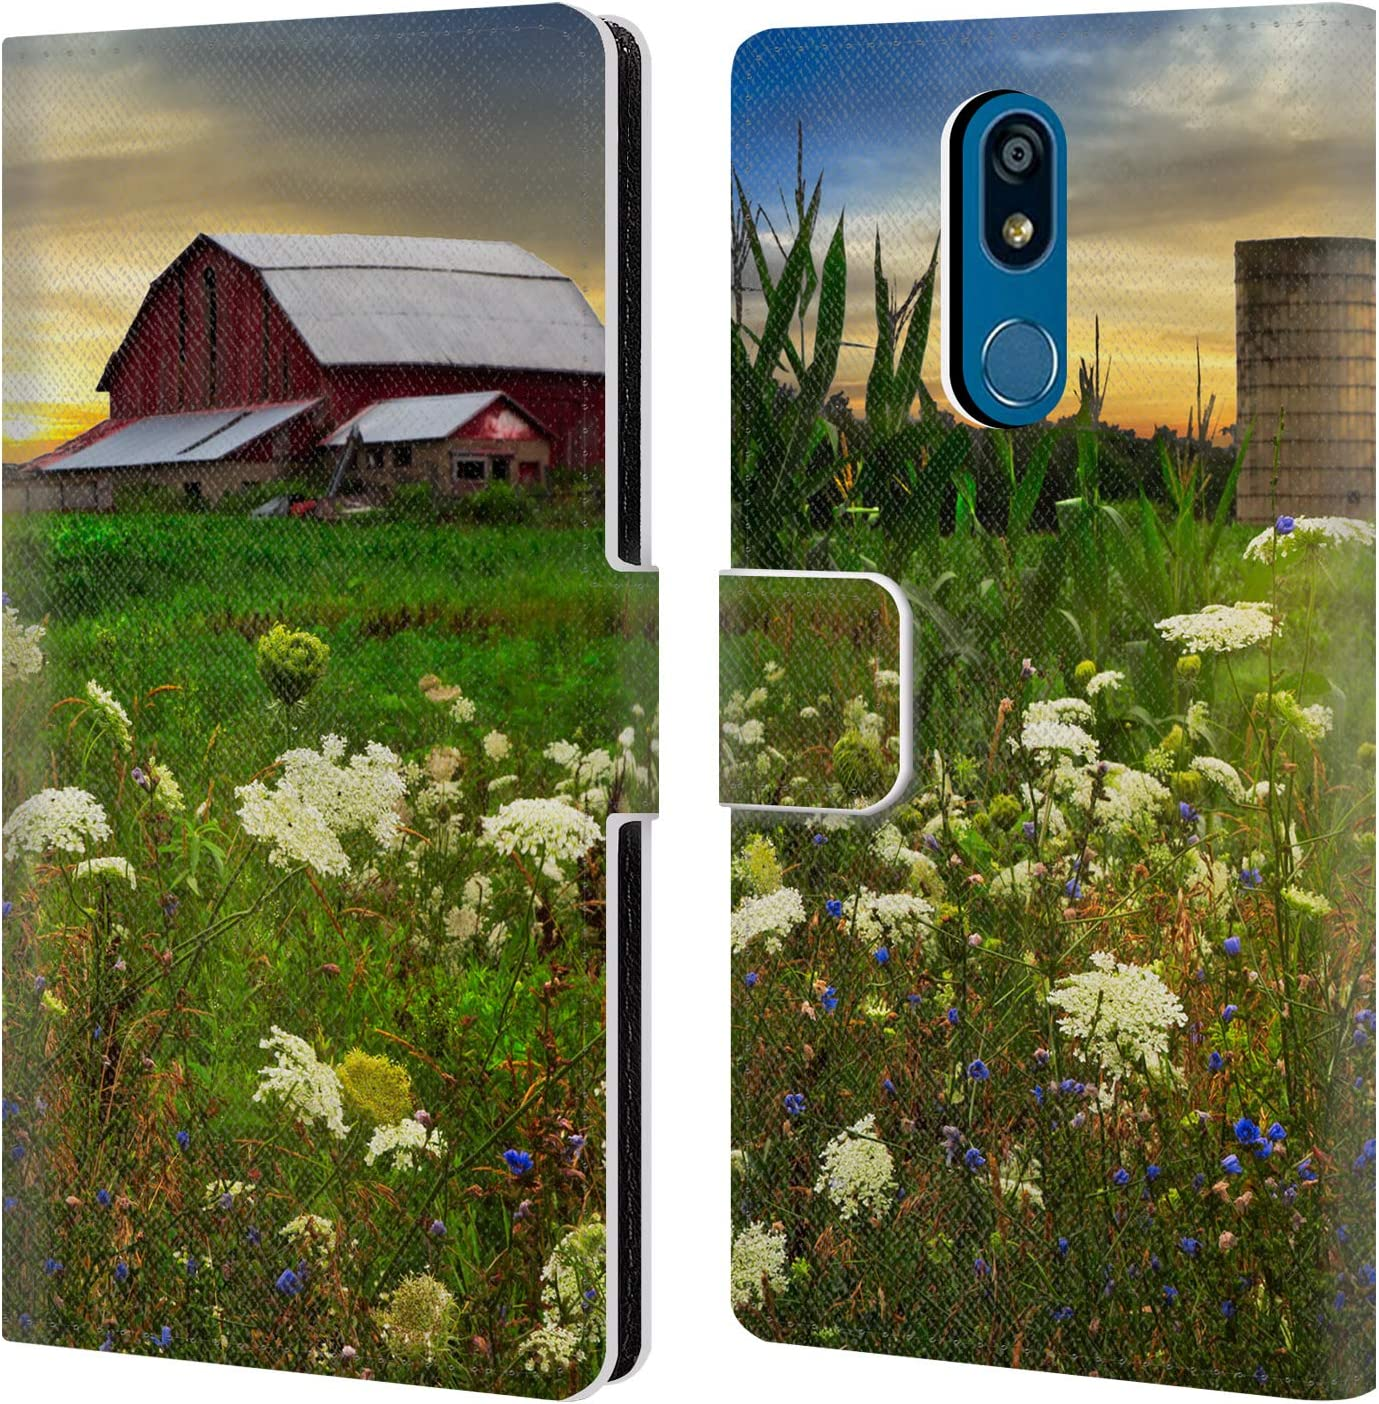 Official Celebrate Life Gallery Sunset Lace Pastures Florals Leather Book Wallet Case Cover Compatible for LG K40 / K12 Plus